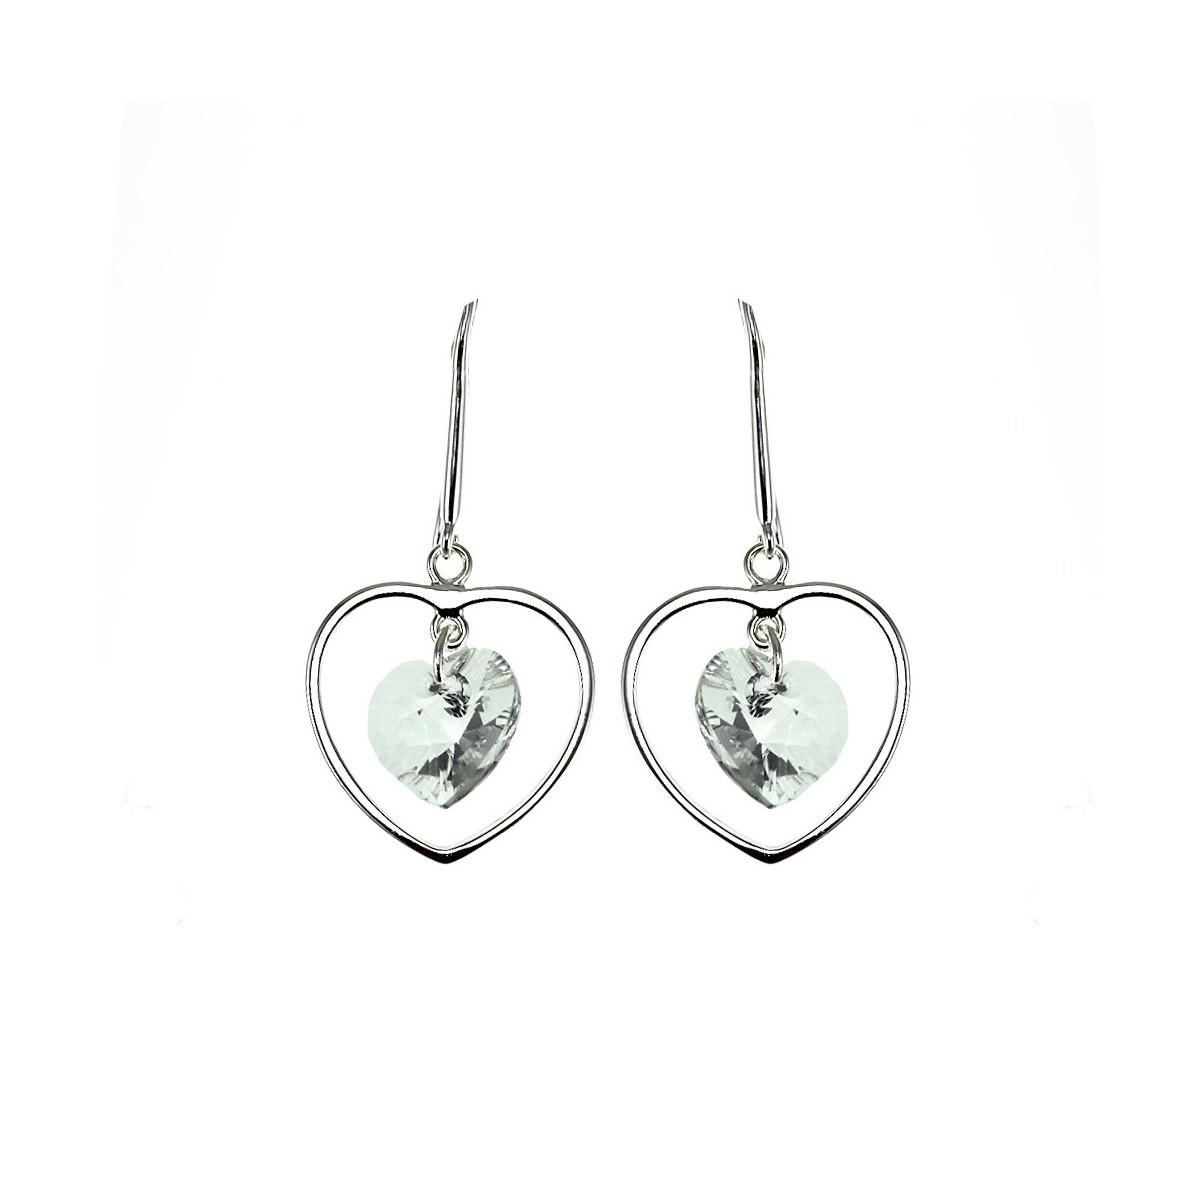 Boucles d'oreilles argentées et cristal coeur So Charm made with Crystal from Swarovski